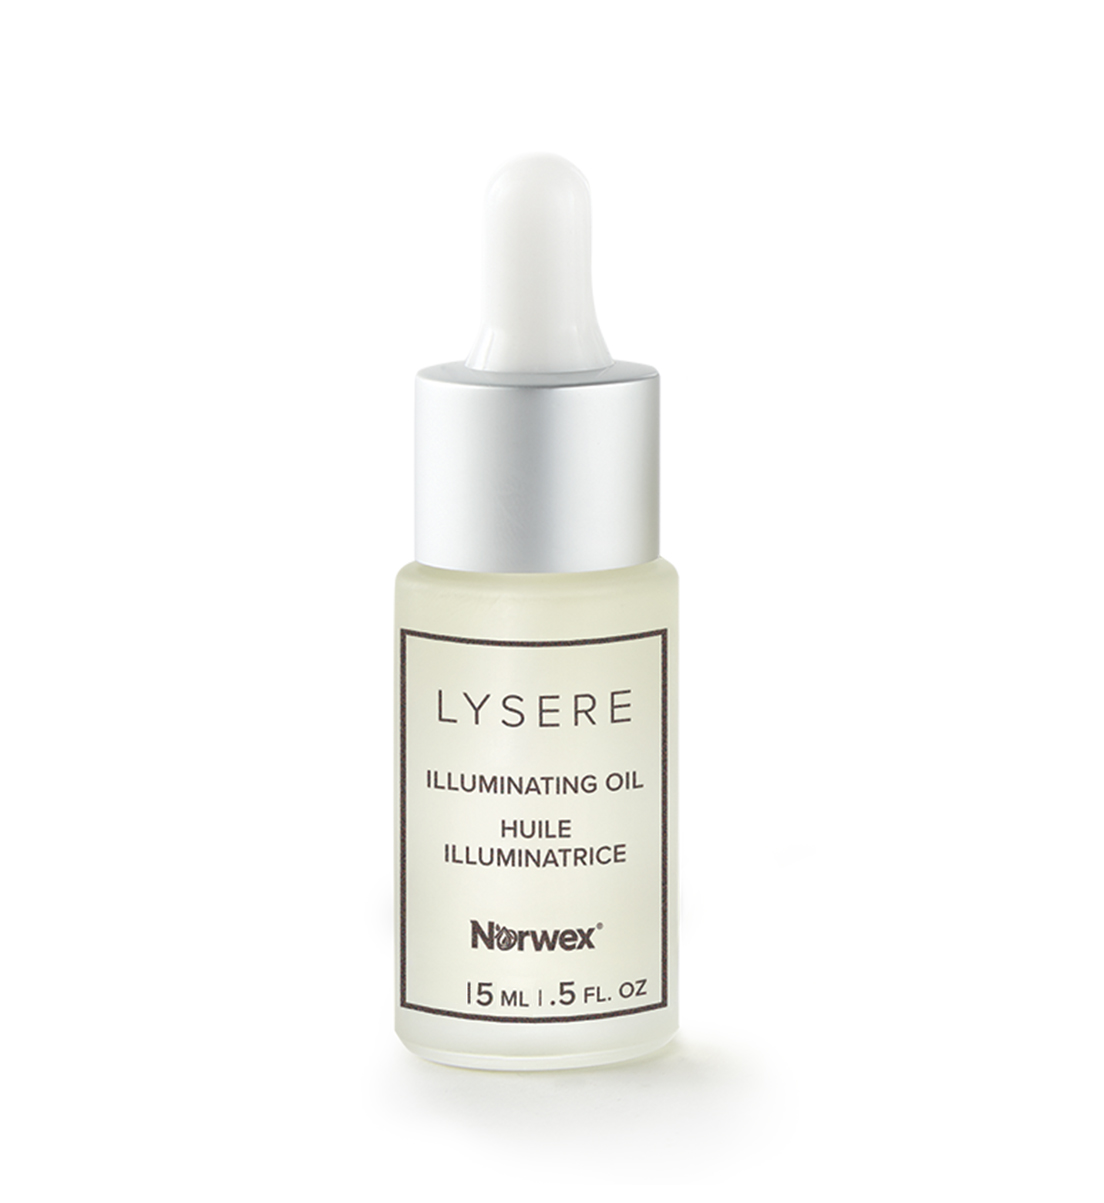 Lysere Illuminating Oil